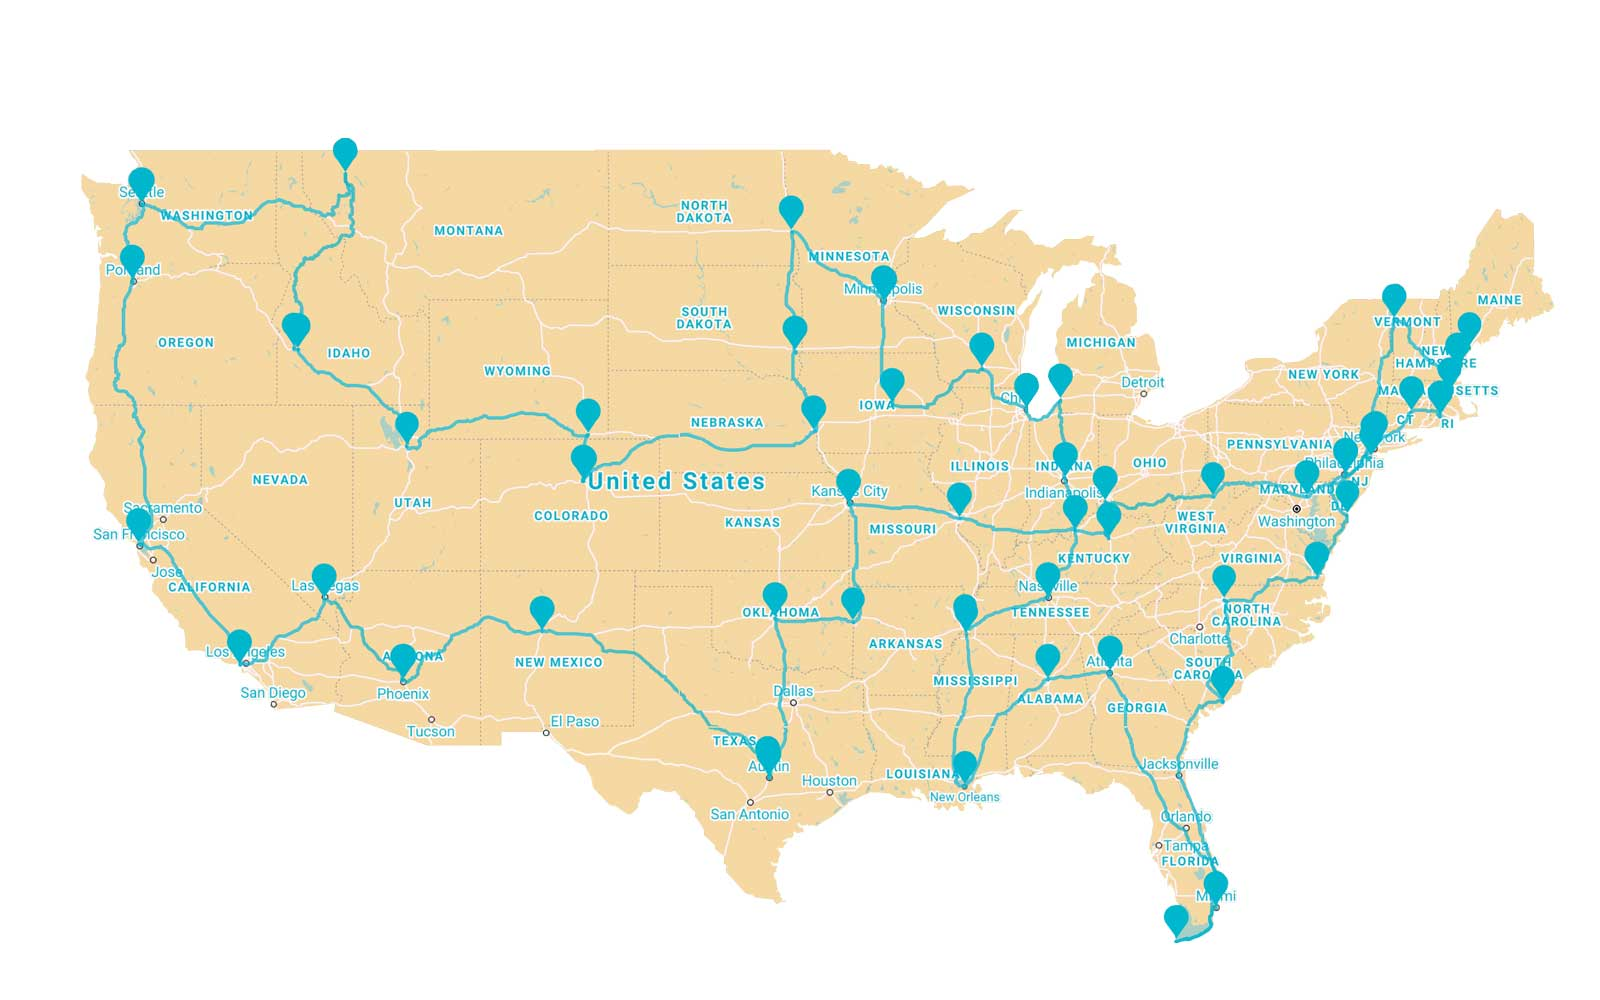 Here's a Great Road Trip Tool for Anyone Who Wants to Eat Their Way Across the U.S.